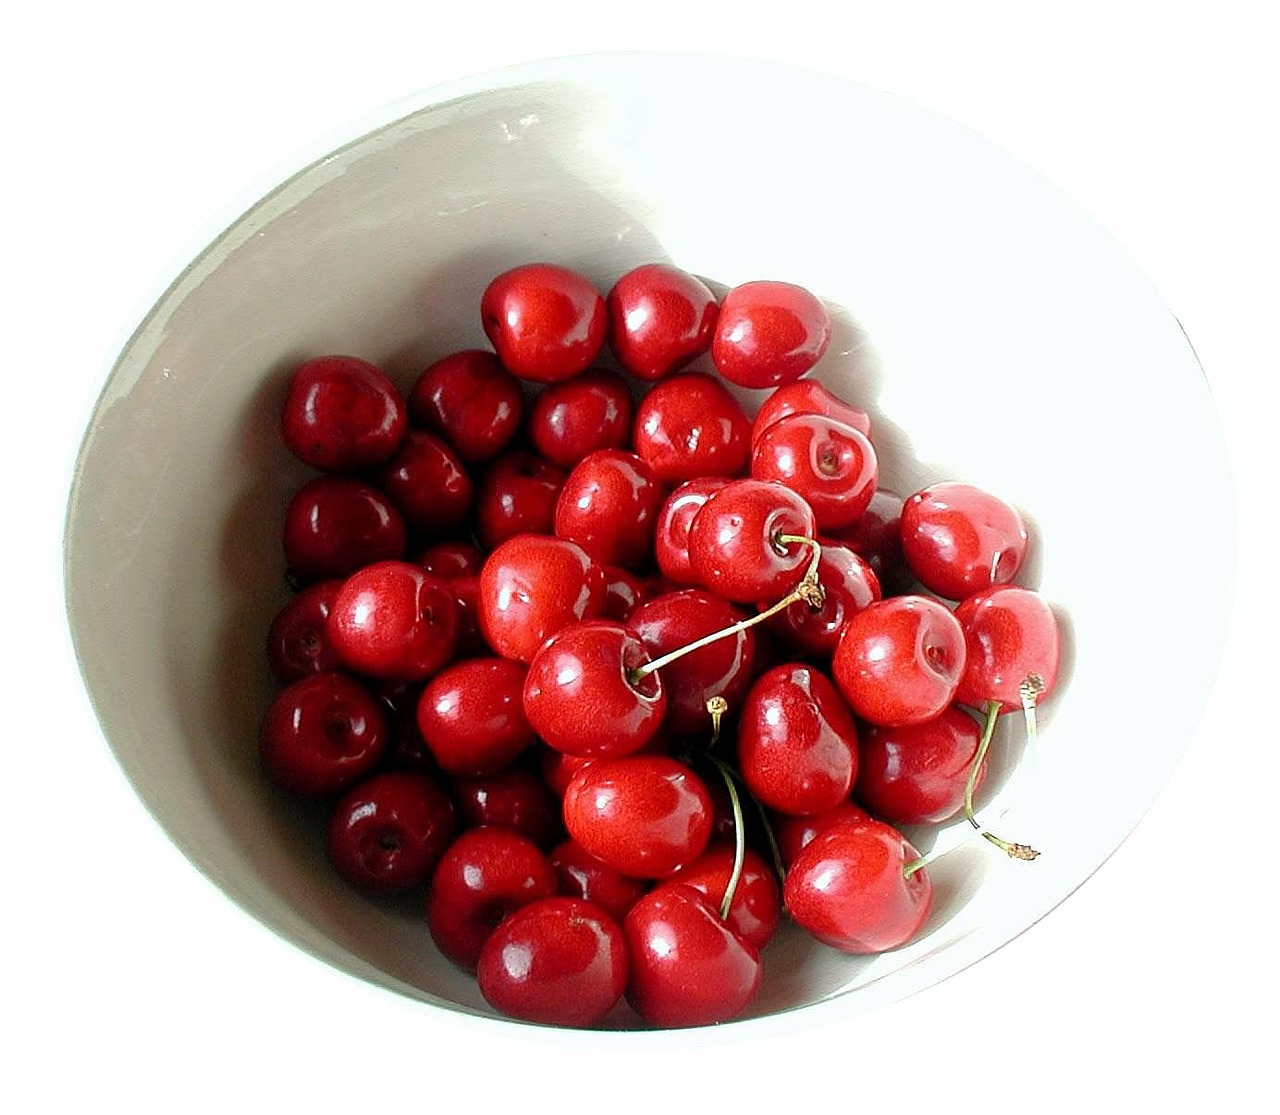 cherries shell fruit bowl free photo